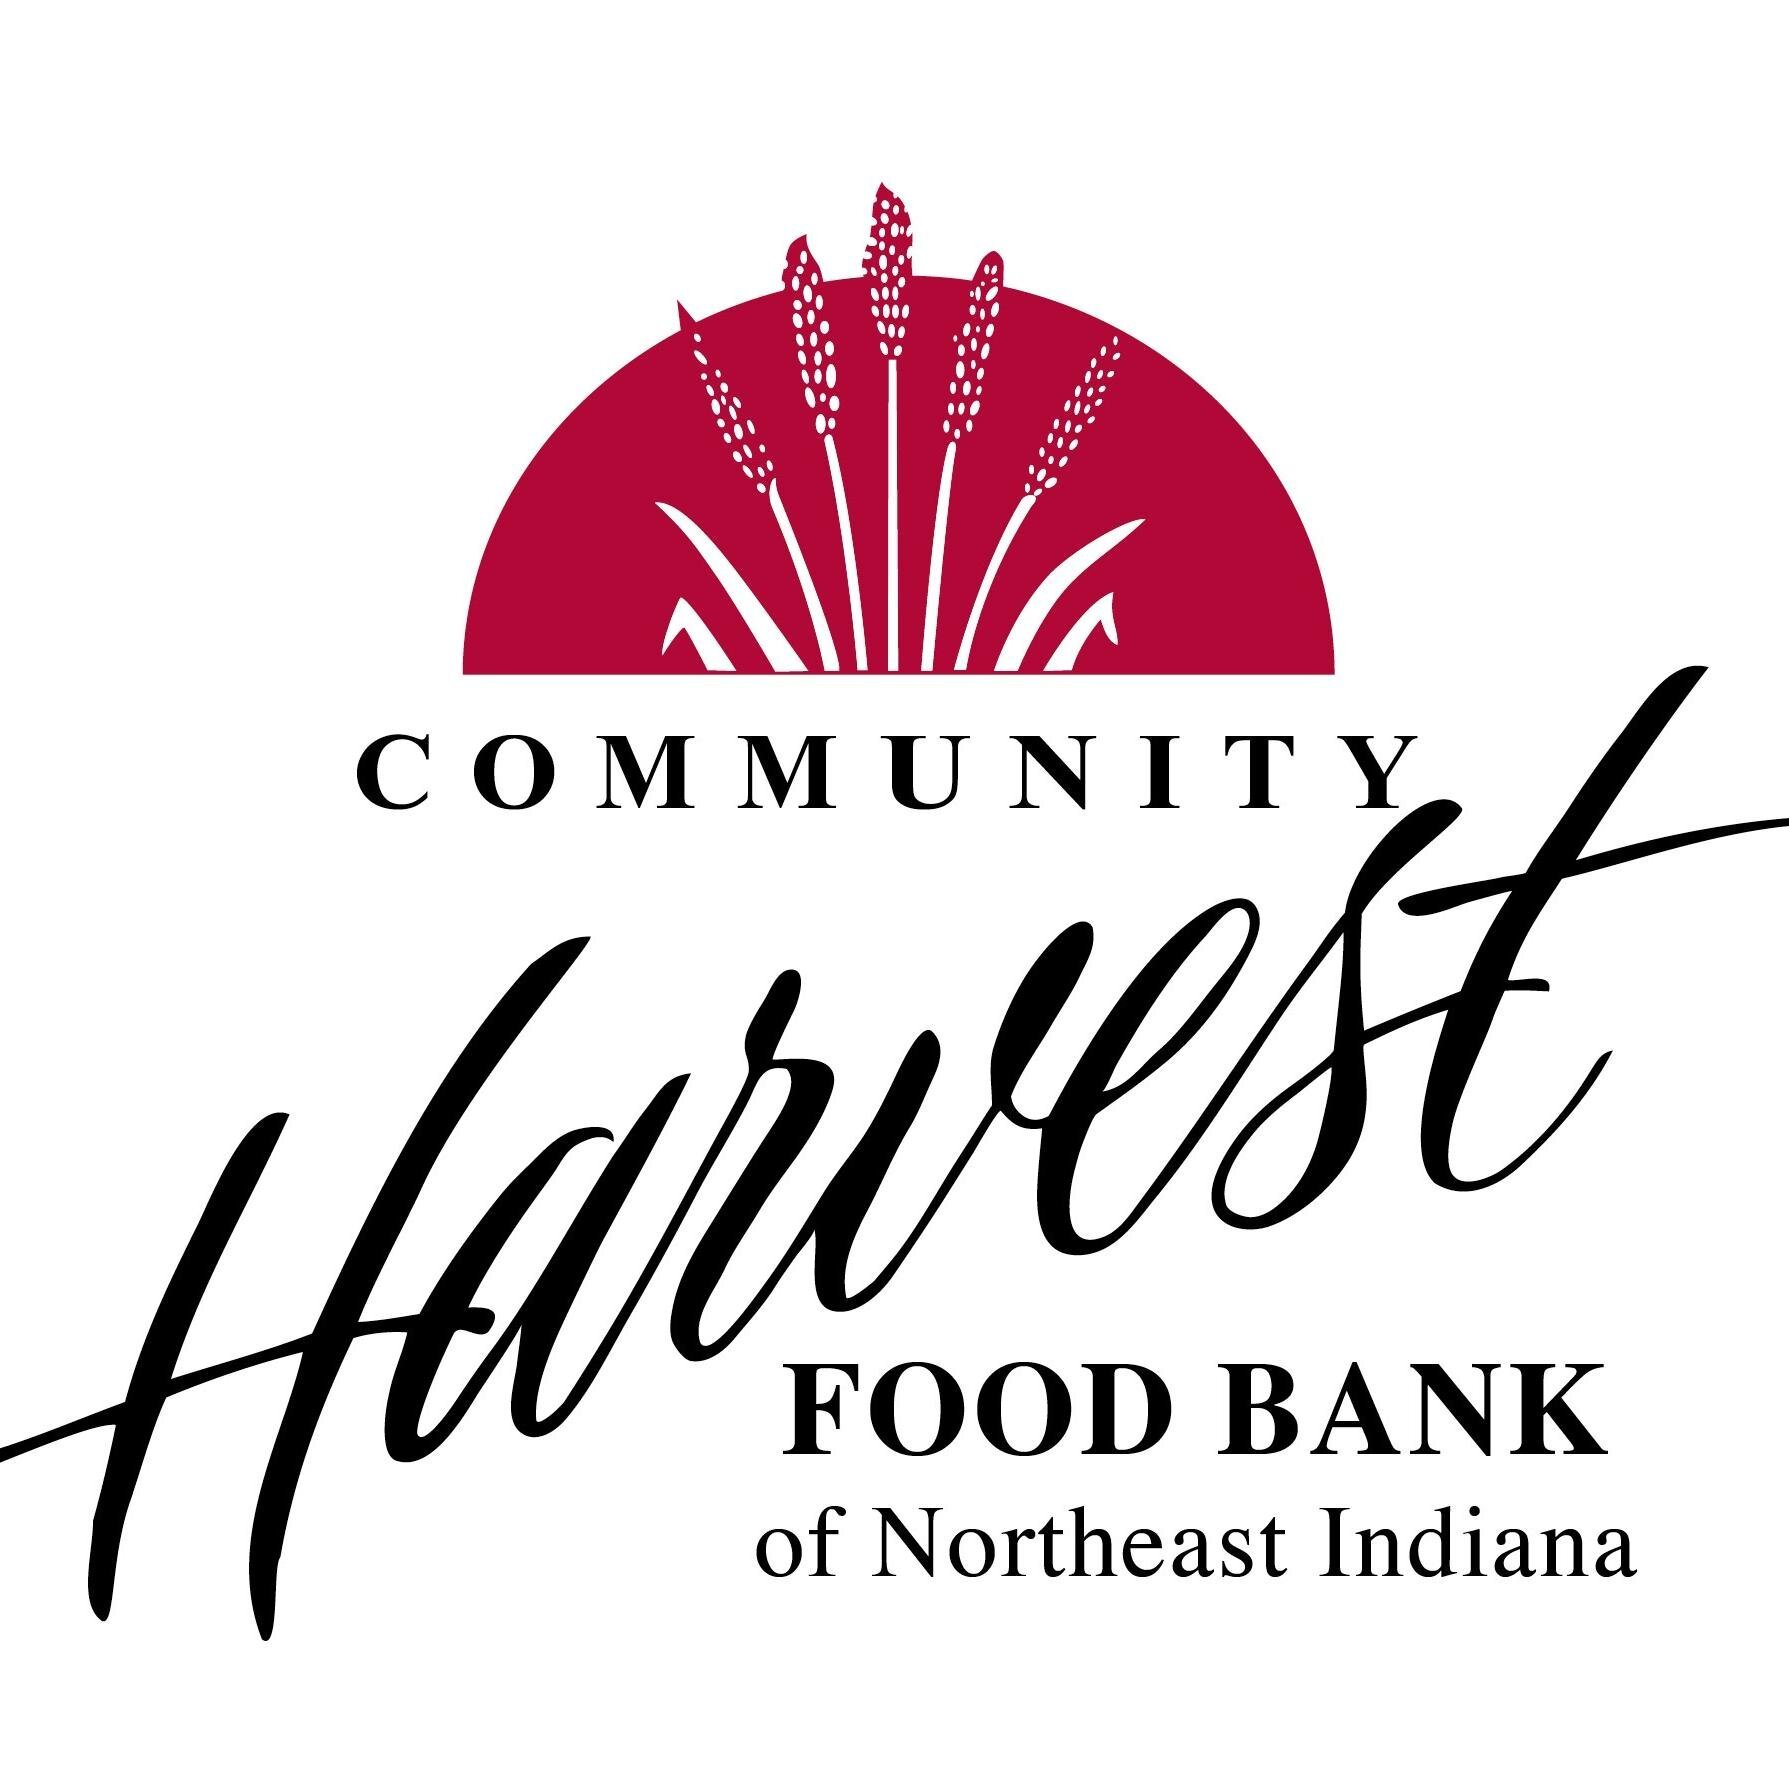 Community Harvest Food Bank Fort Wayne In